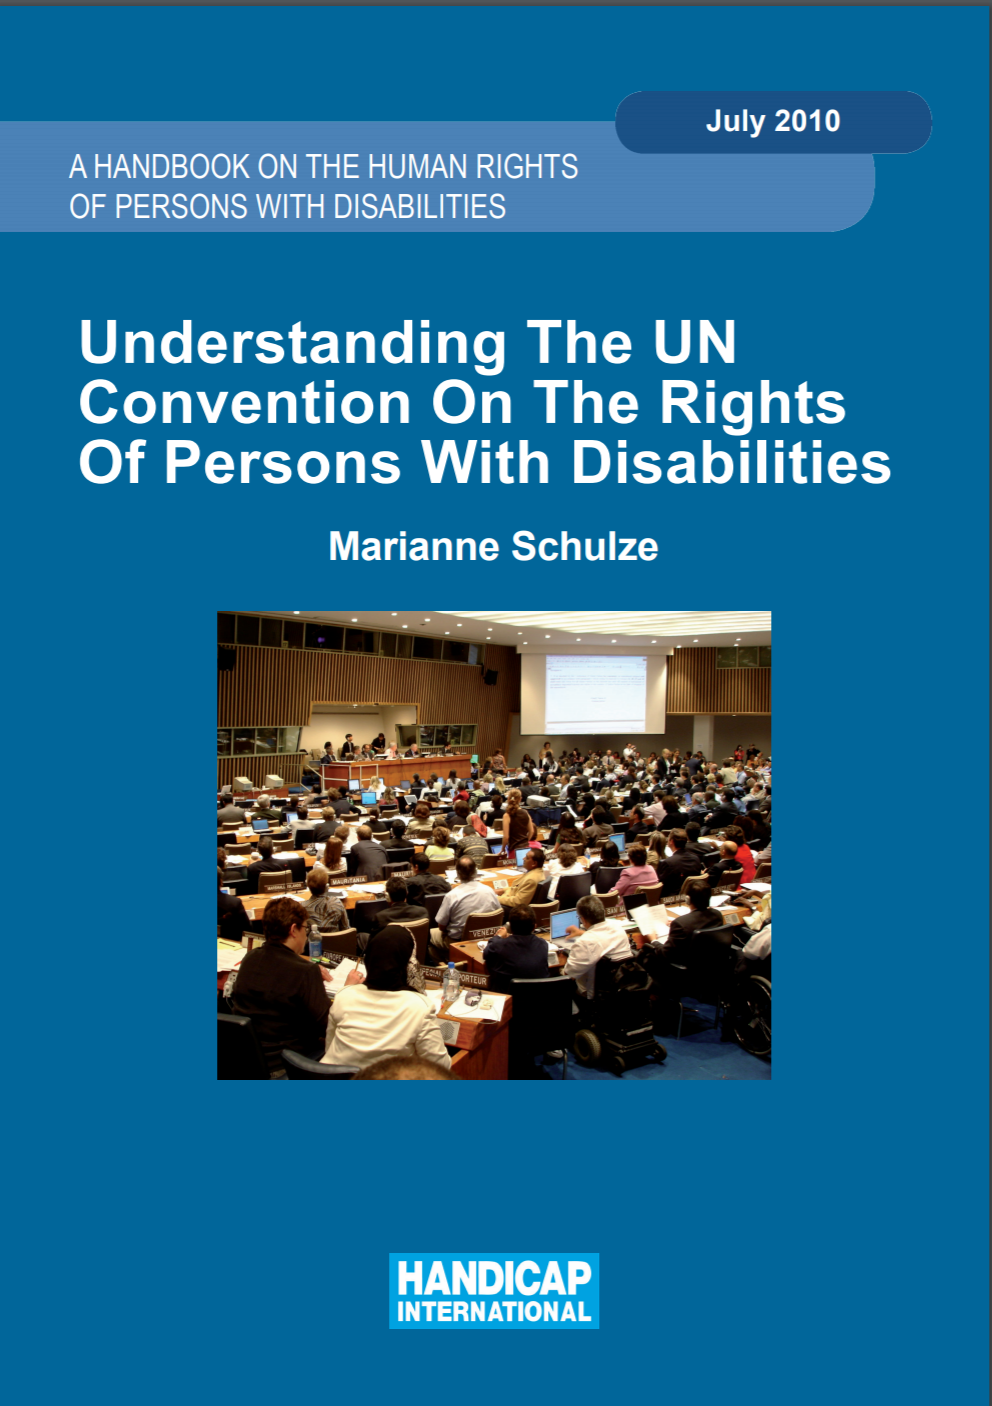 """Cover for CRPD handbook entitled """"A Handbook on the Human Rights of Persons with Disabilities: Understanding the UN Convention on the Rights of Persons with Disabilities"""""""